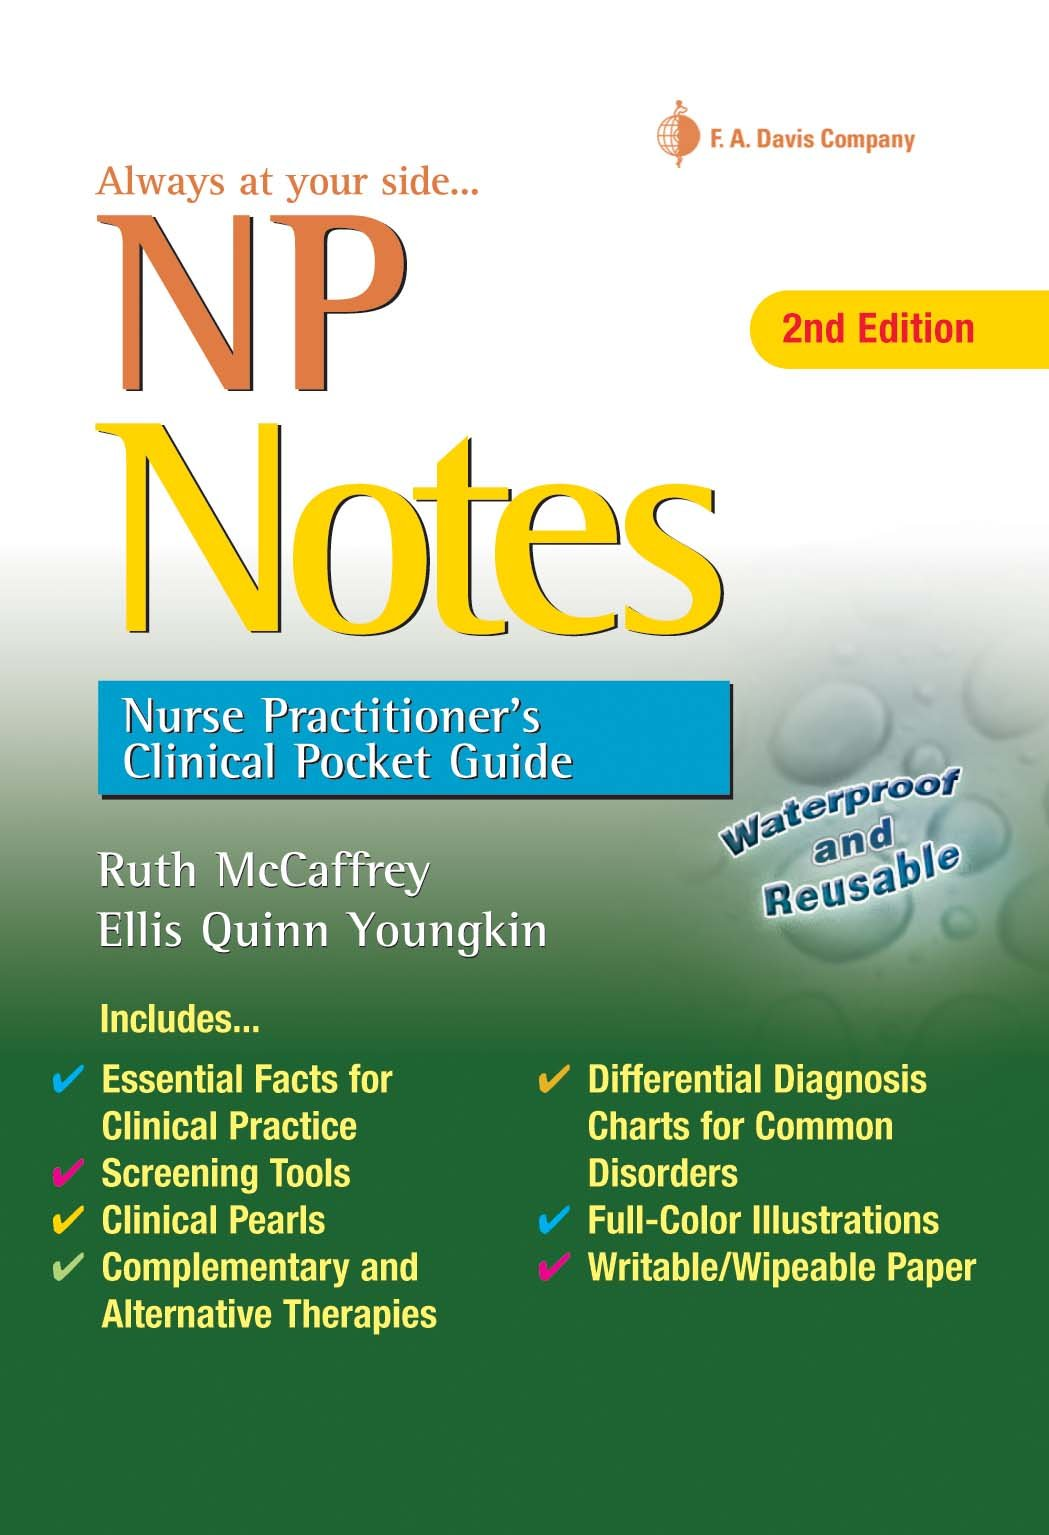 NP Notes: Nurse Practitioner's Clinical Pocket Guide